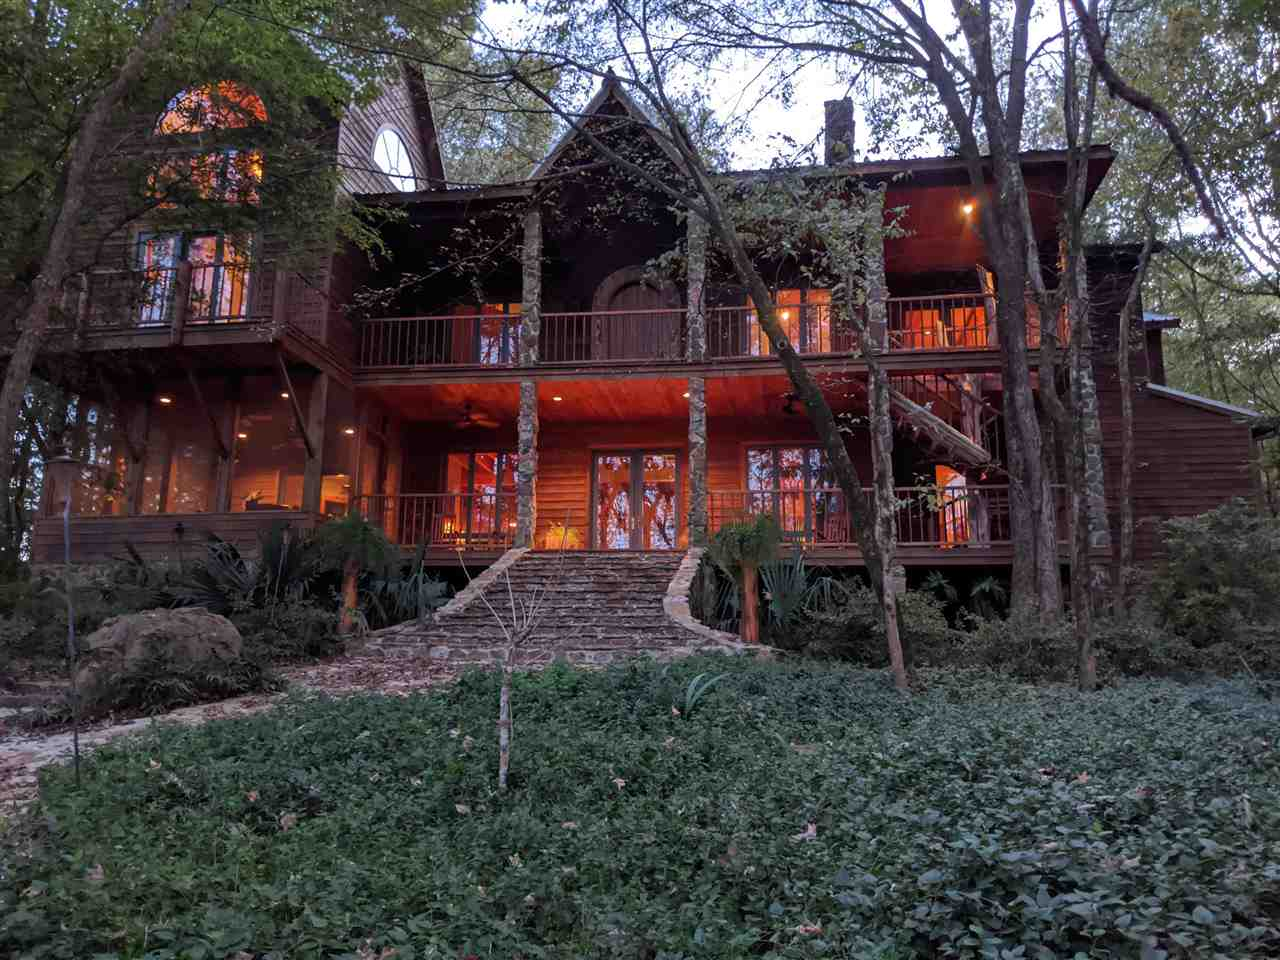 260 CHAPEL HILL RD, Flora, MS 39071